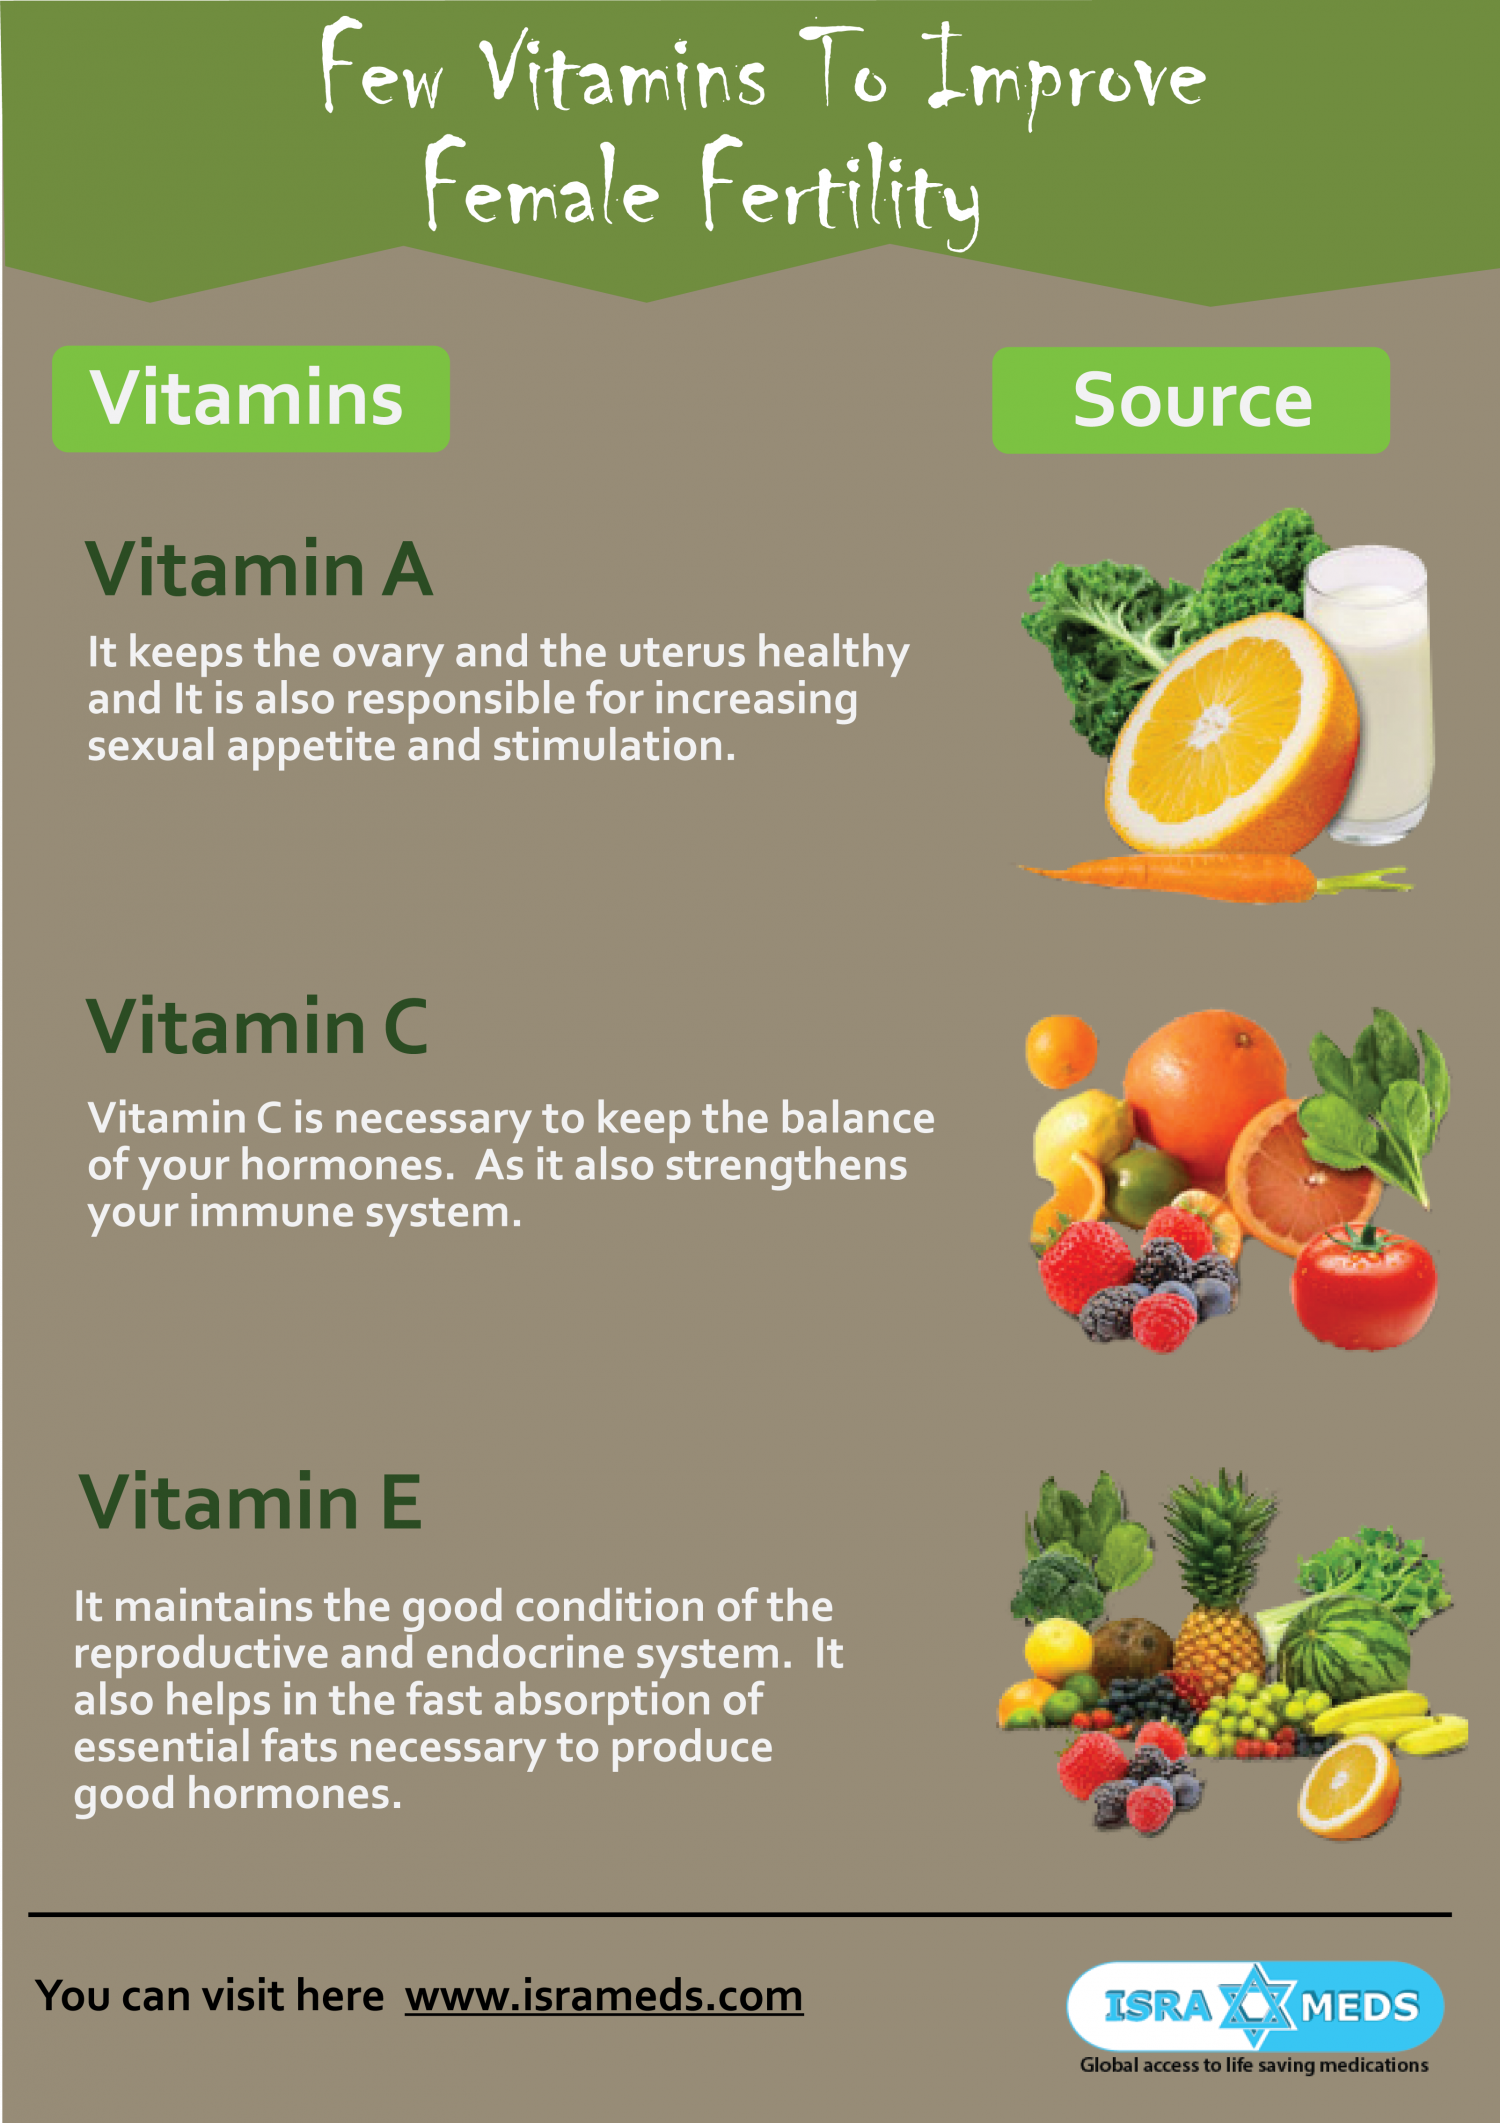 Few Vitamins to improve Female Fertility Infographic